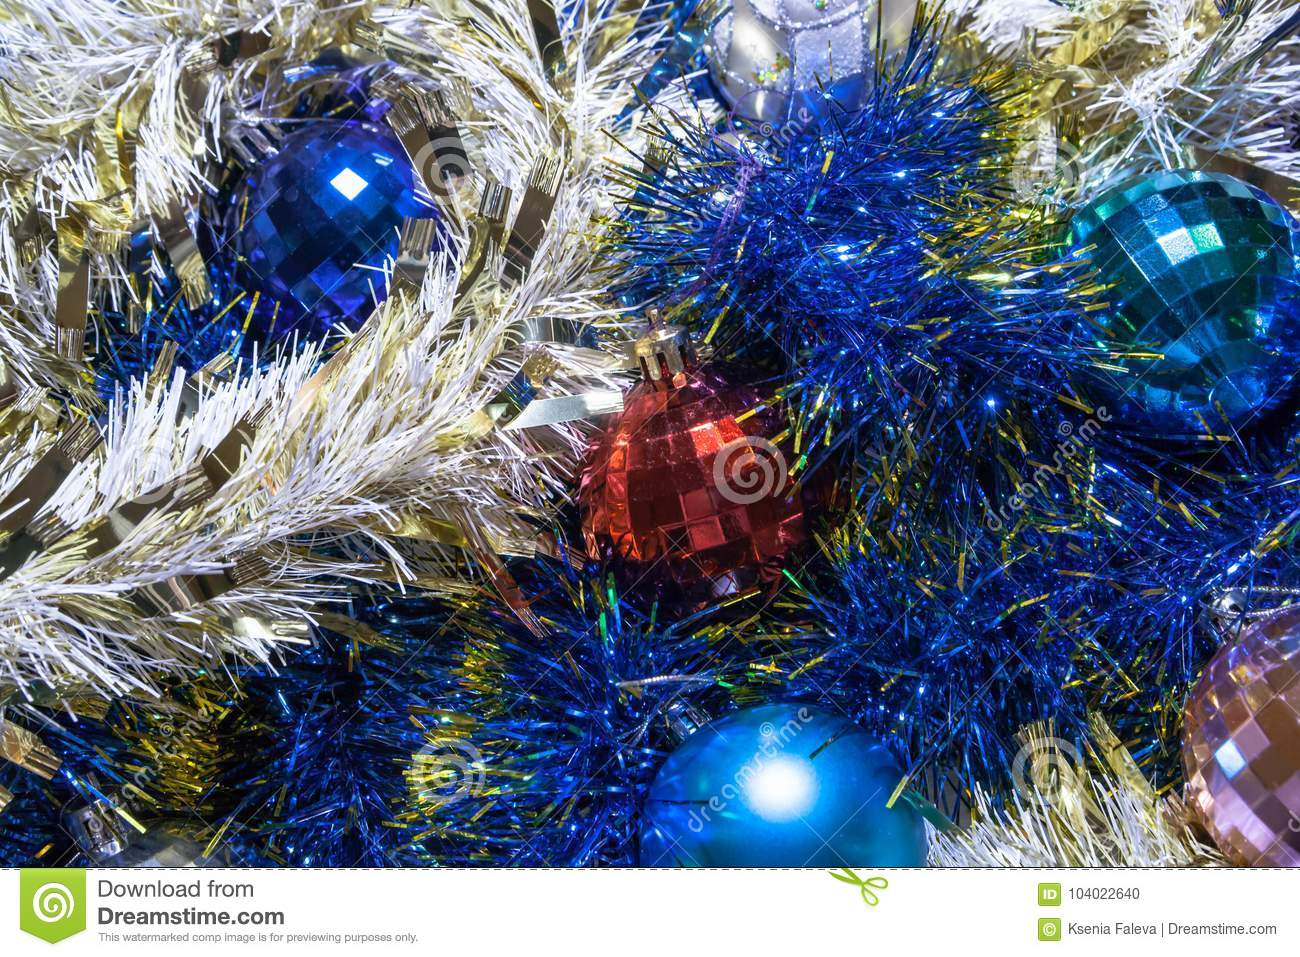 christmas decorations garlands are blue and gold the balls are red and blue